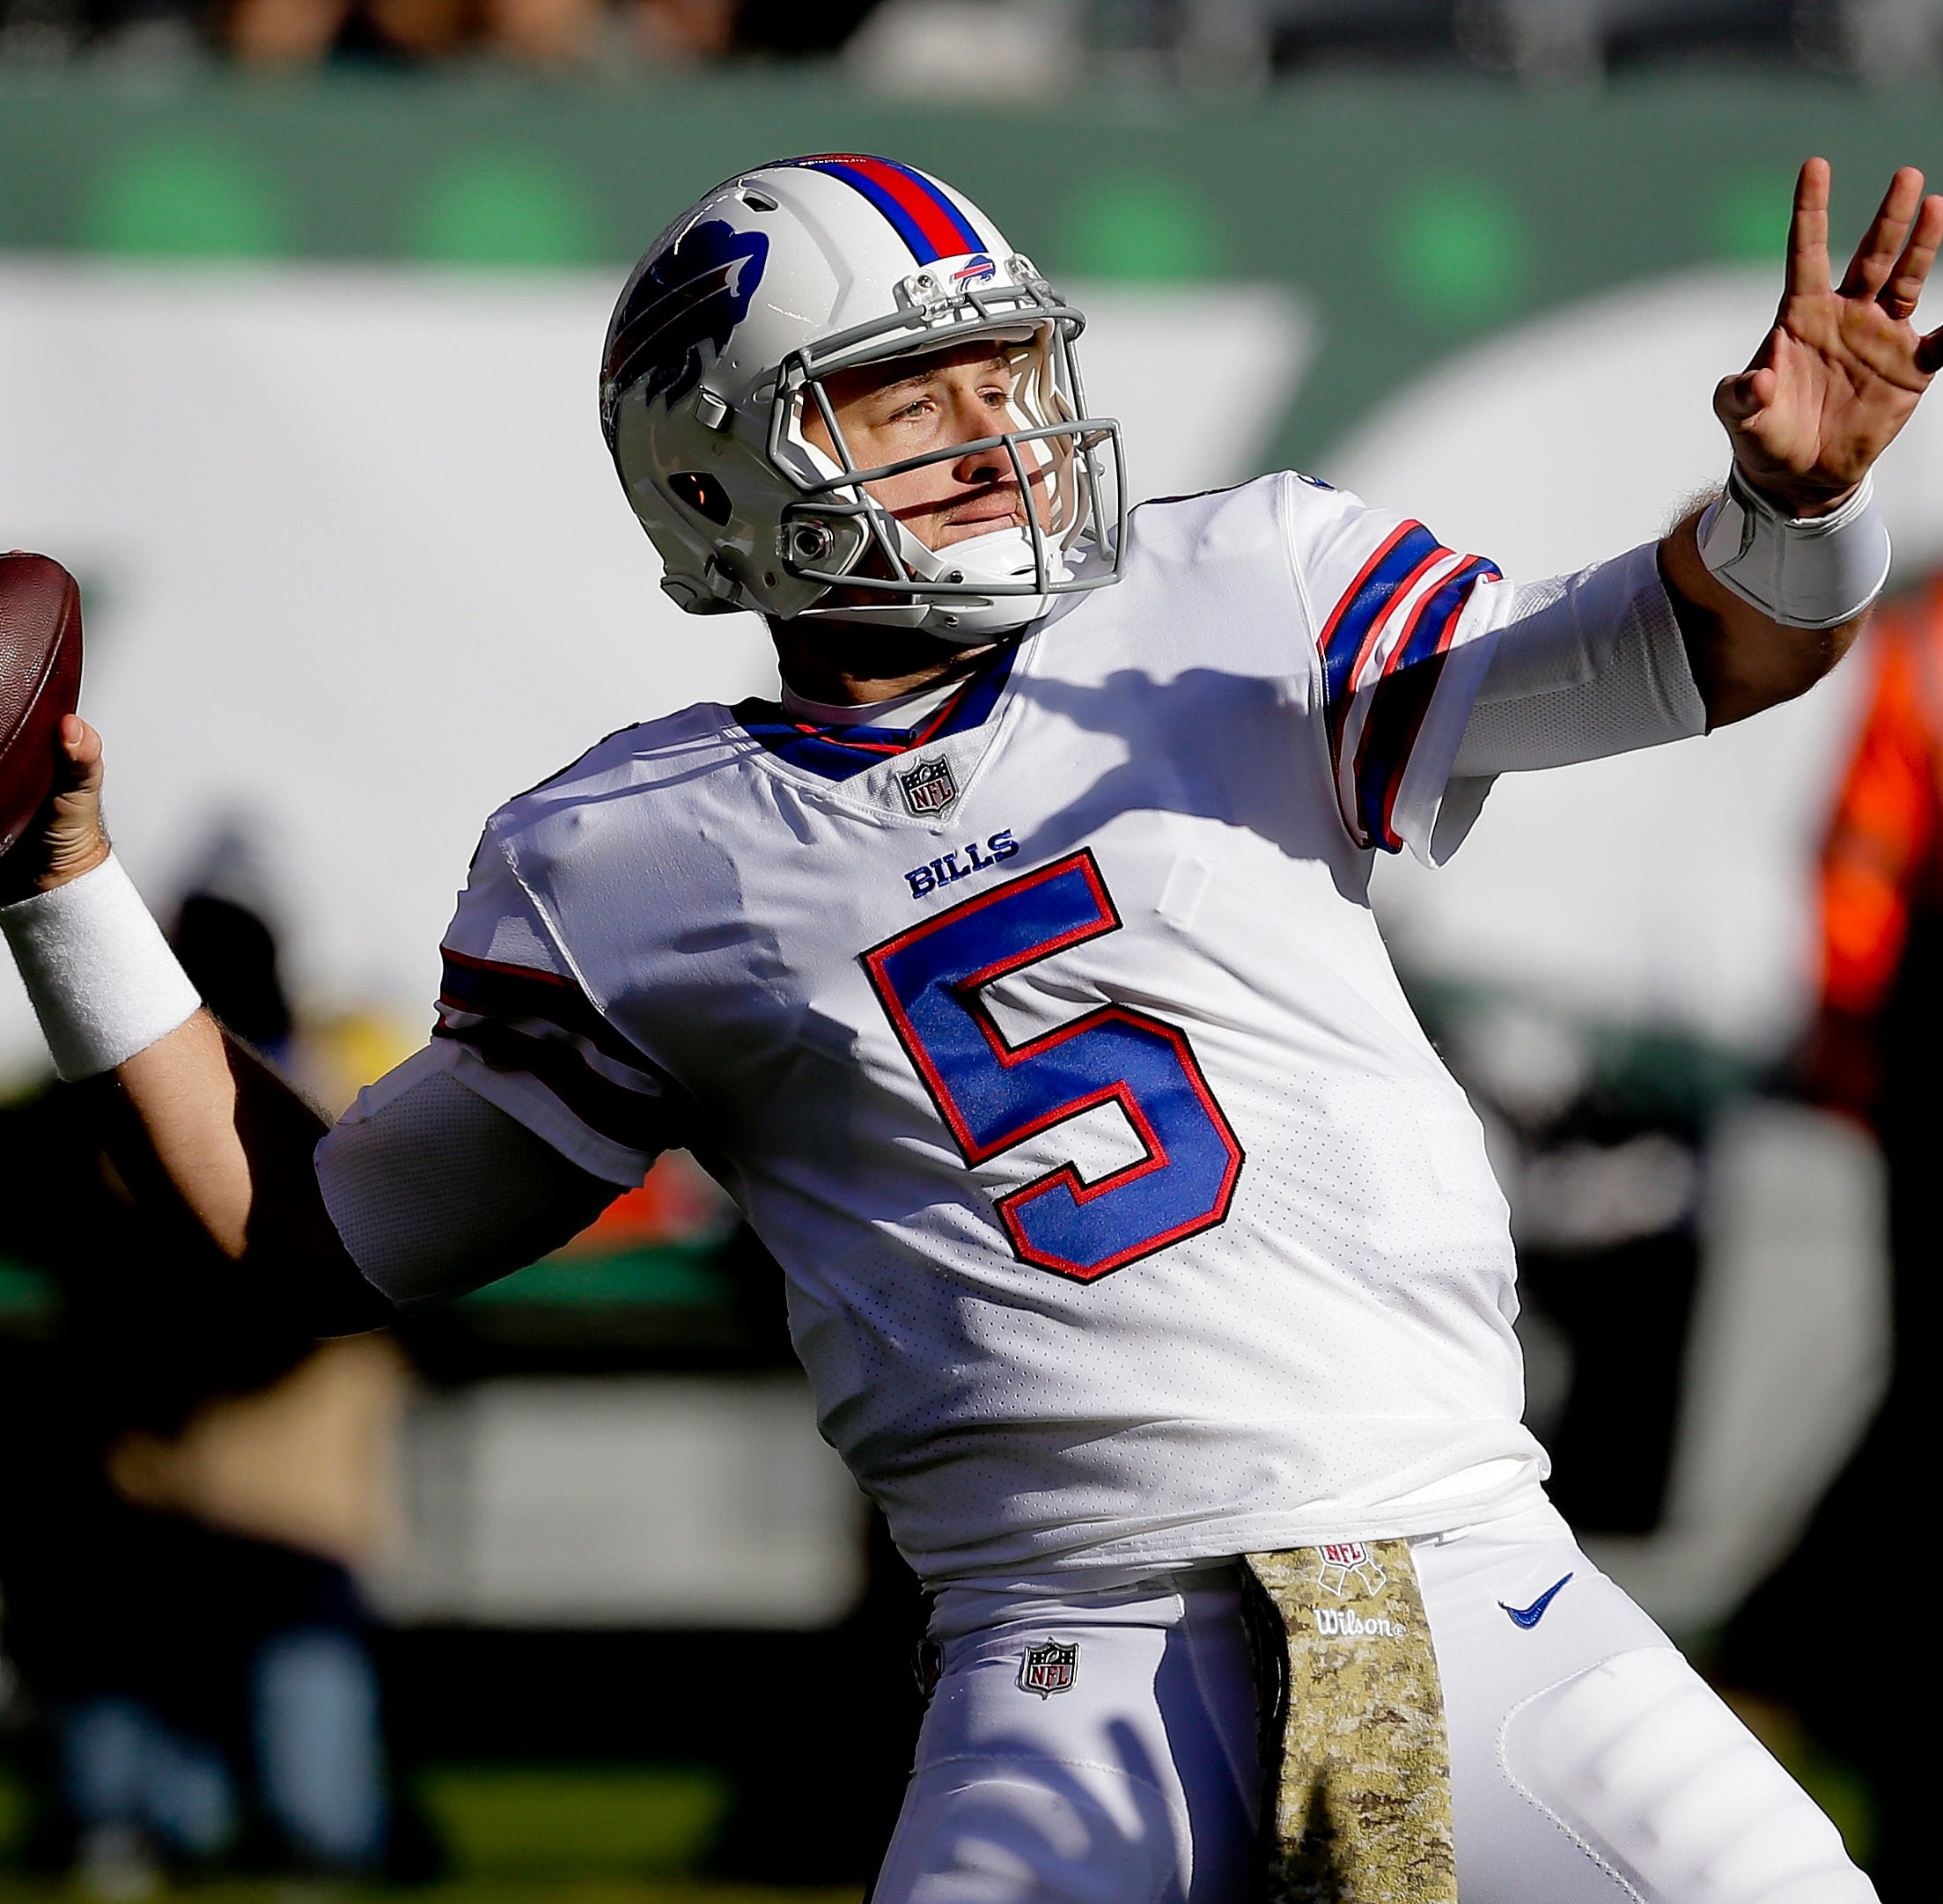 Matt Barkley and Buffalo Bills are embarrassing the New York Jets